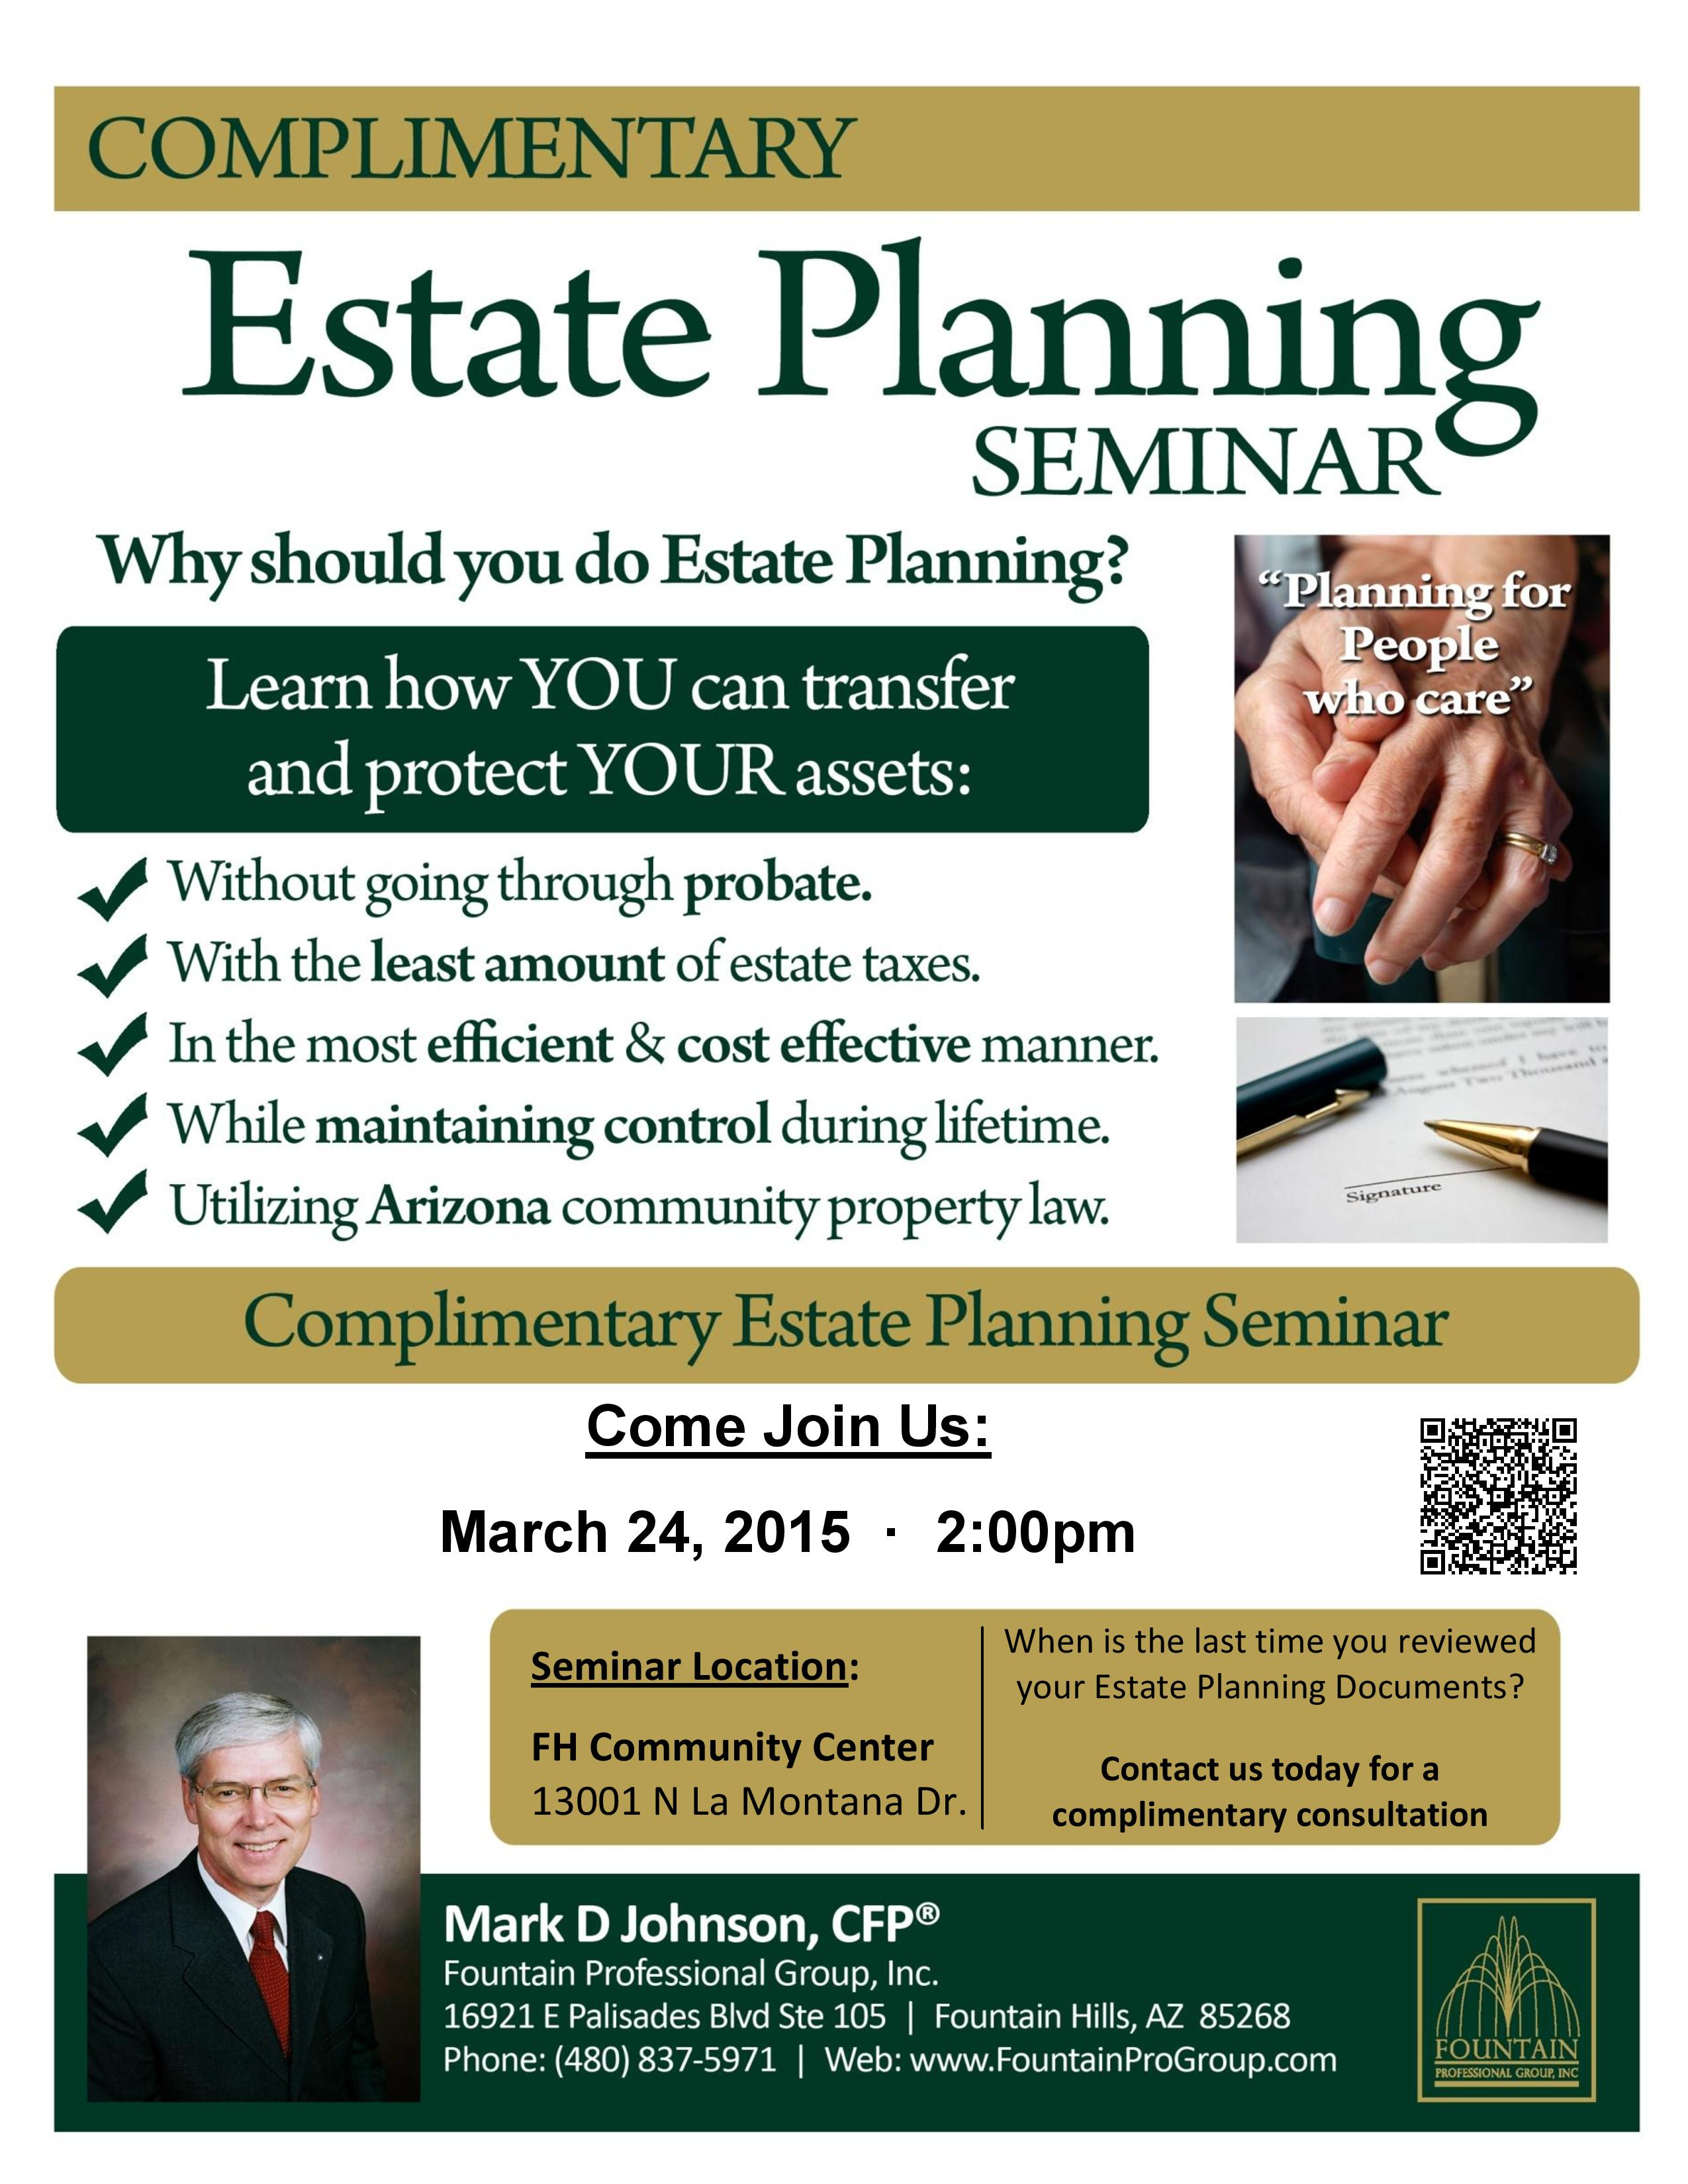 Complementary Estate Planning Seminar March 2015